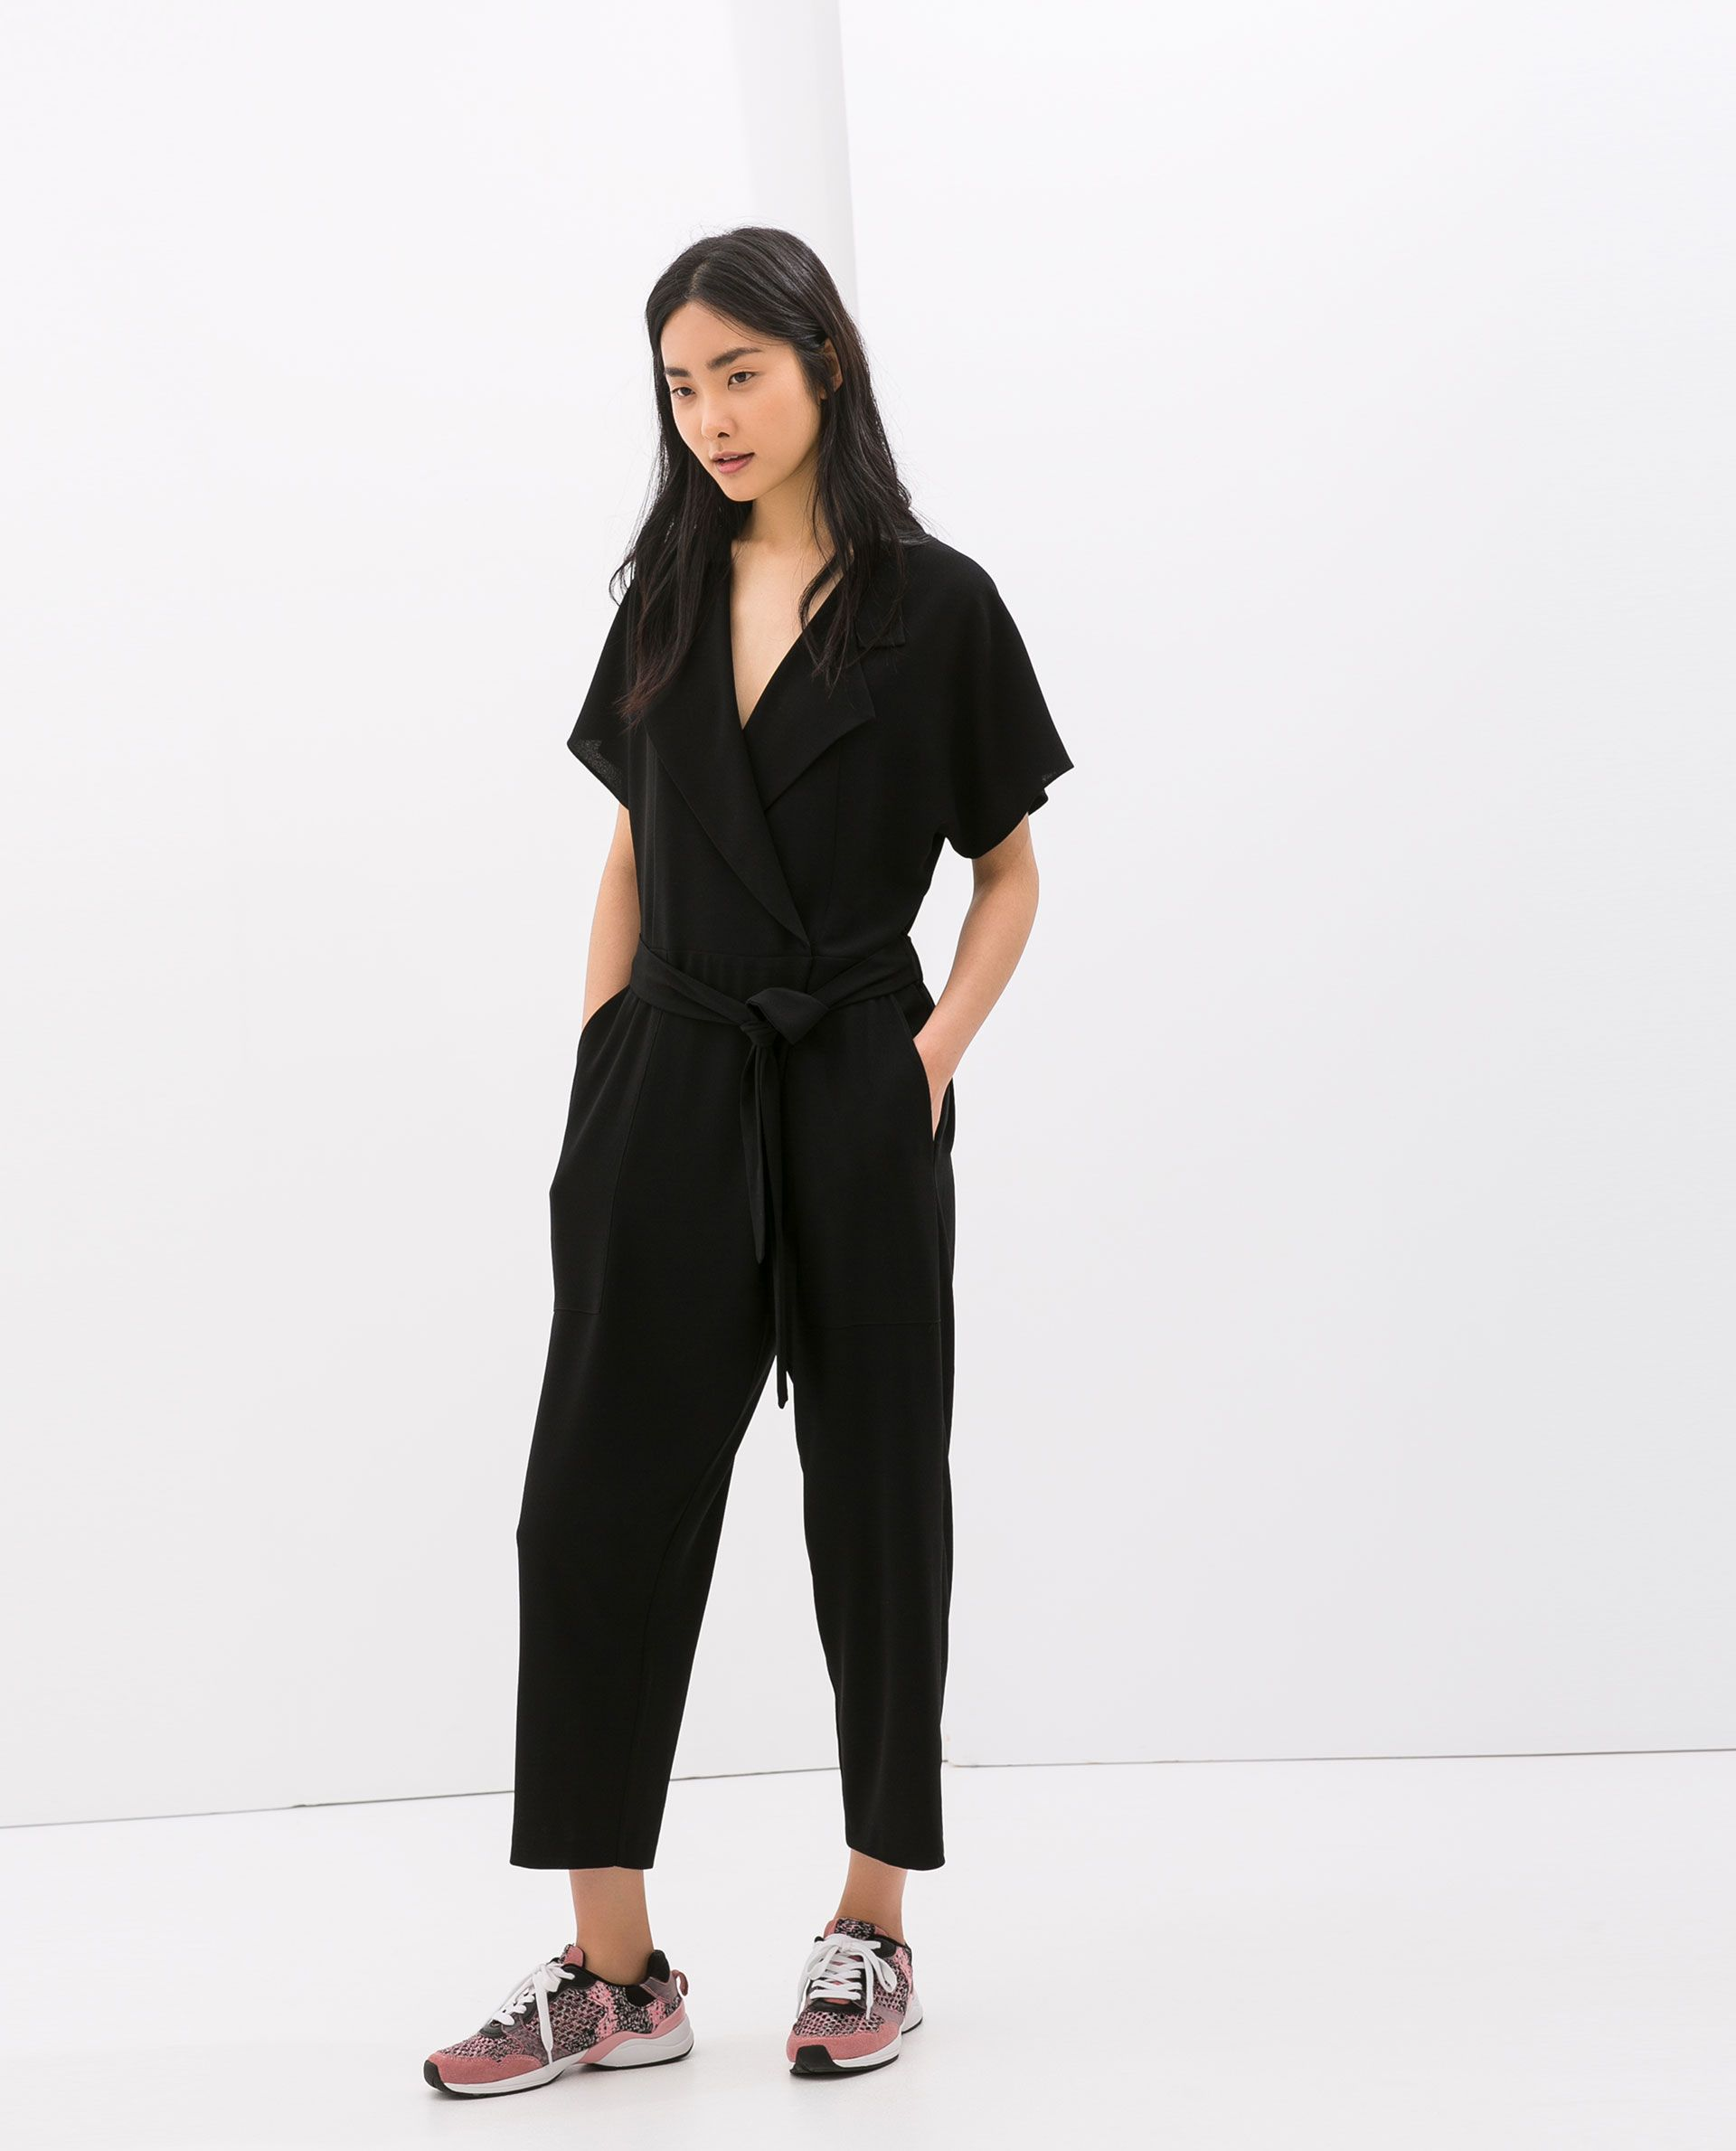 CROSSOVER JUMPSUIT from Zara